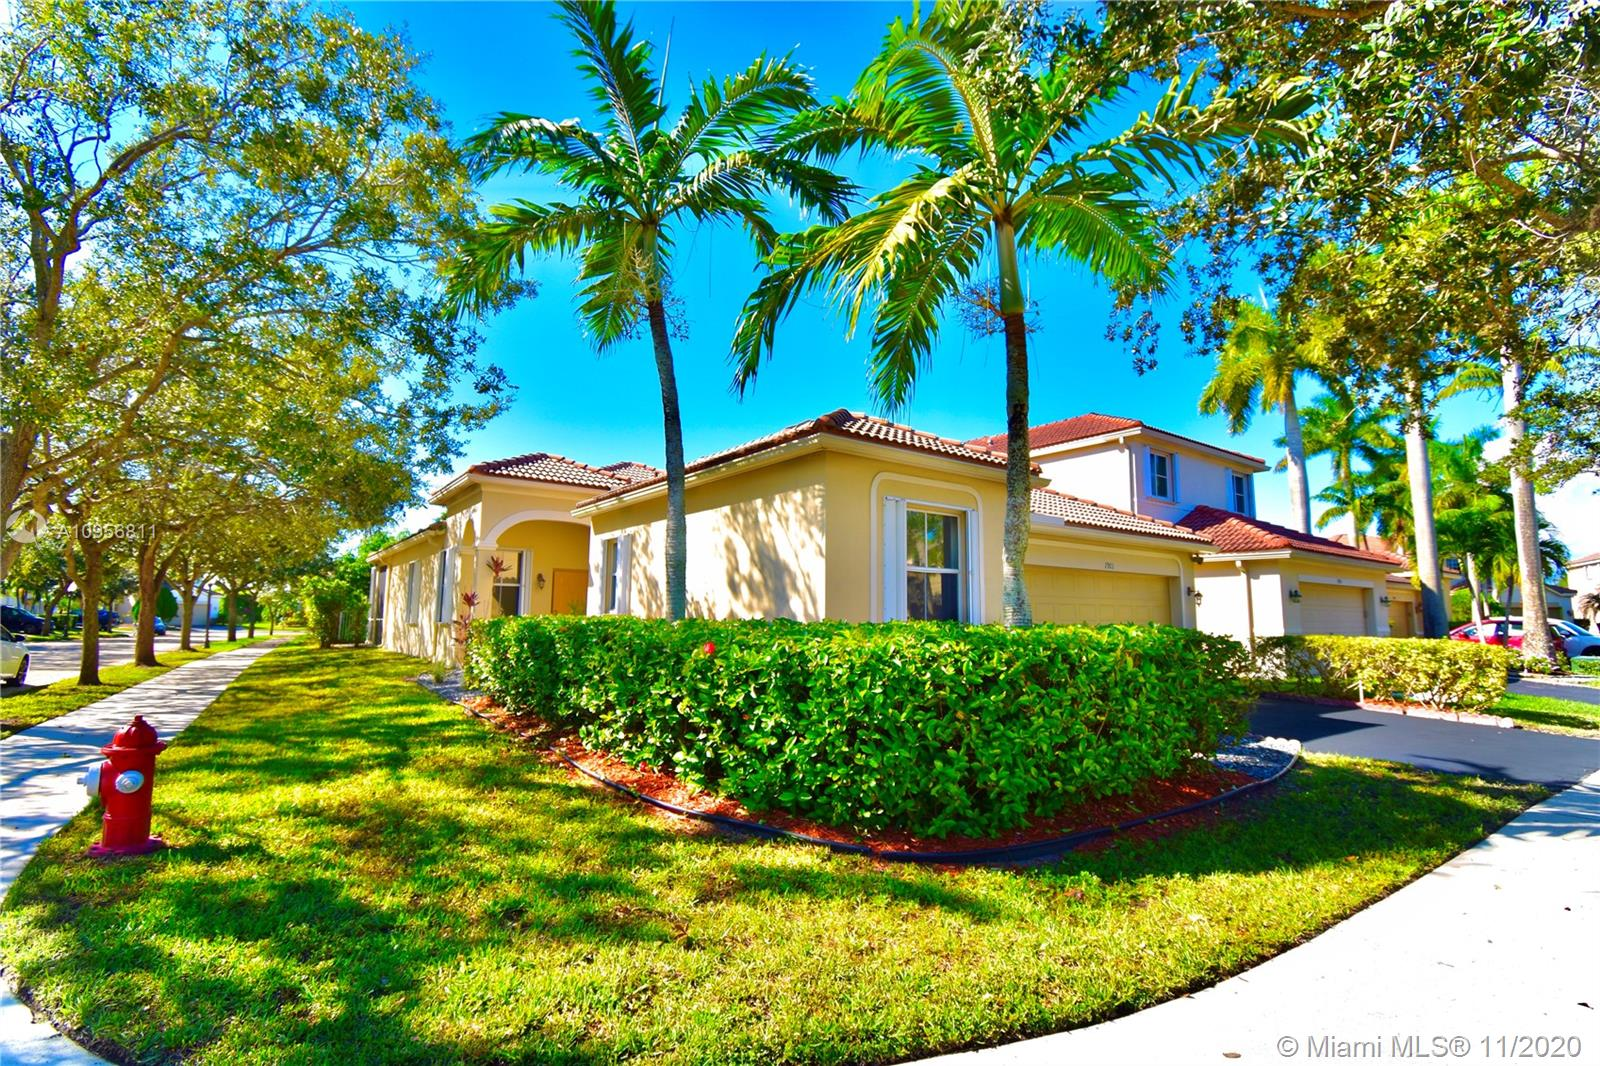 Beautiful 1 Story , 4 bedrooms, 2.5 bath pool home  in SAVANNA , gated community in the City of Weston. This 2 car garage, formal living and dinning room, family room overlooking the POOL AND DECK,  Freshly Painted throughout with Neutral tile  Enjoy a huge screened pool patio for entertaining and relaxing. .Community offers 24 hr security, 3 sparkling pools, mini golf, soccer field and hocking ring, basketball court & batting cage. Curtains excluded from sale.